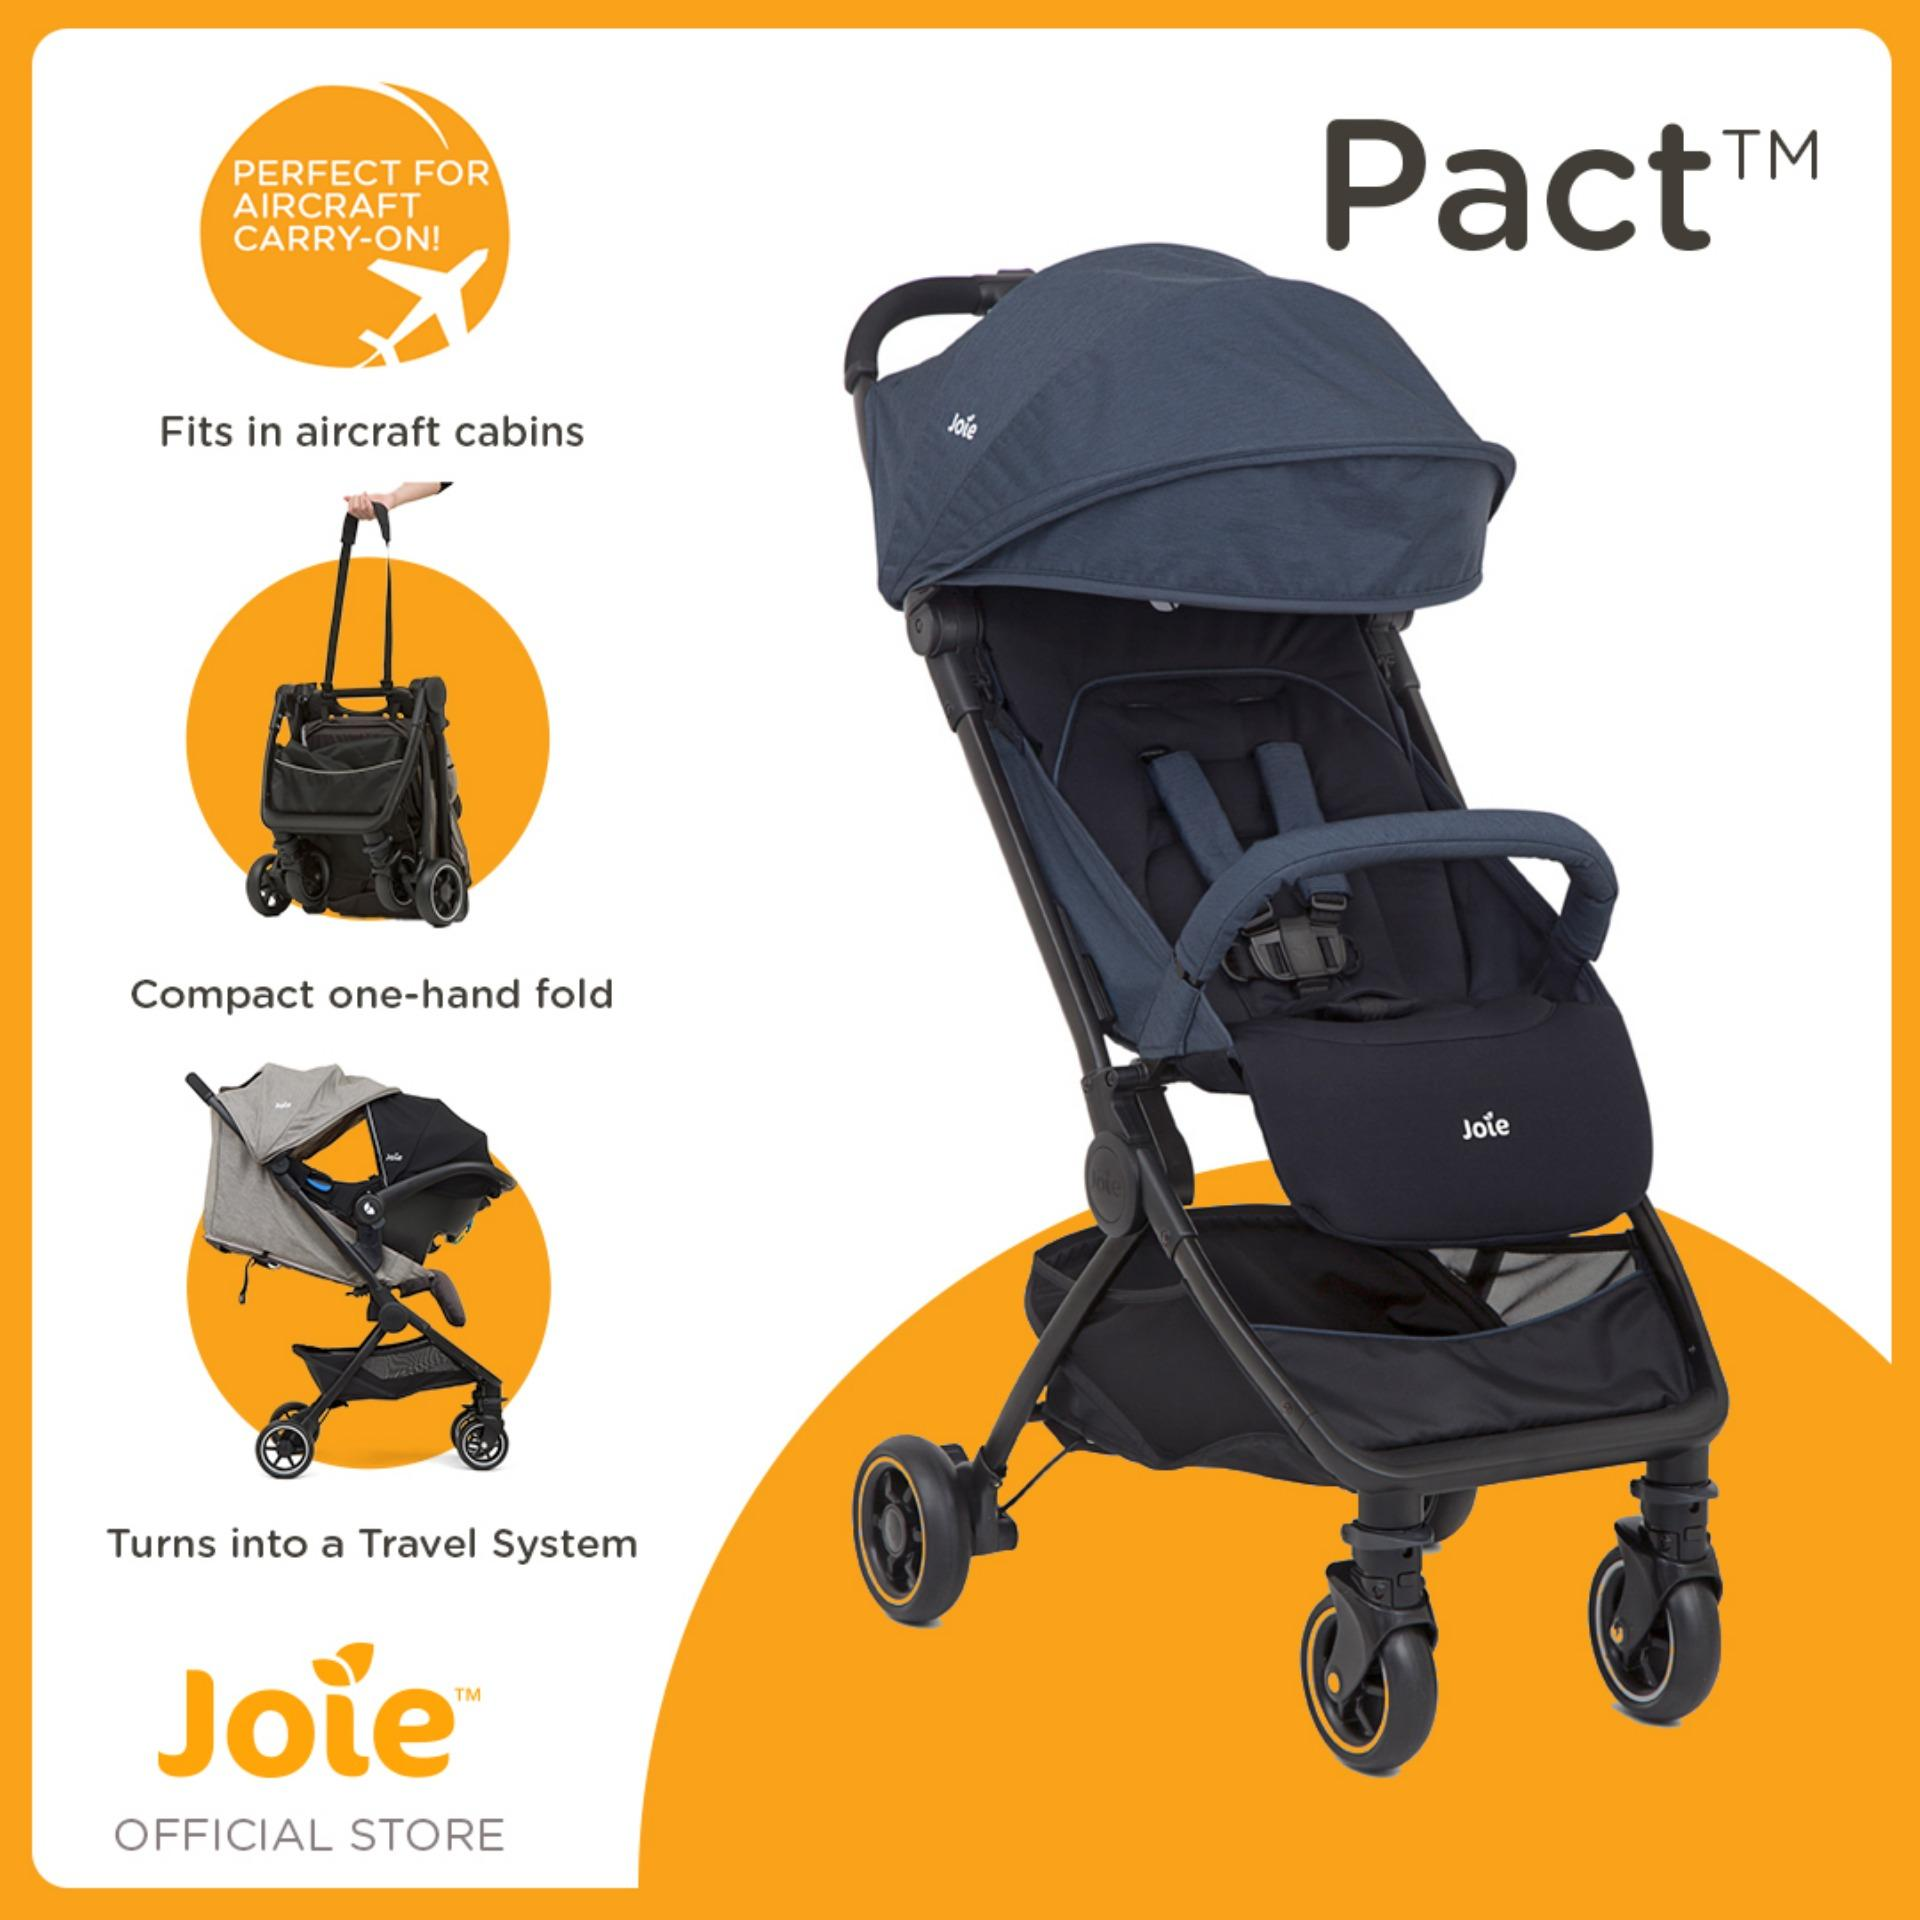 Joie Pact Stroller Compact And Lightweight Navy Blazer By Joie Baby Official Store.